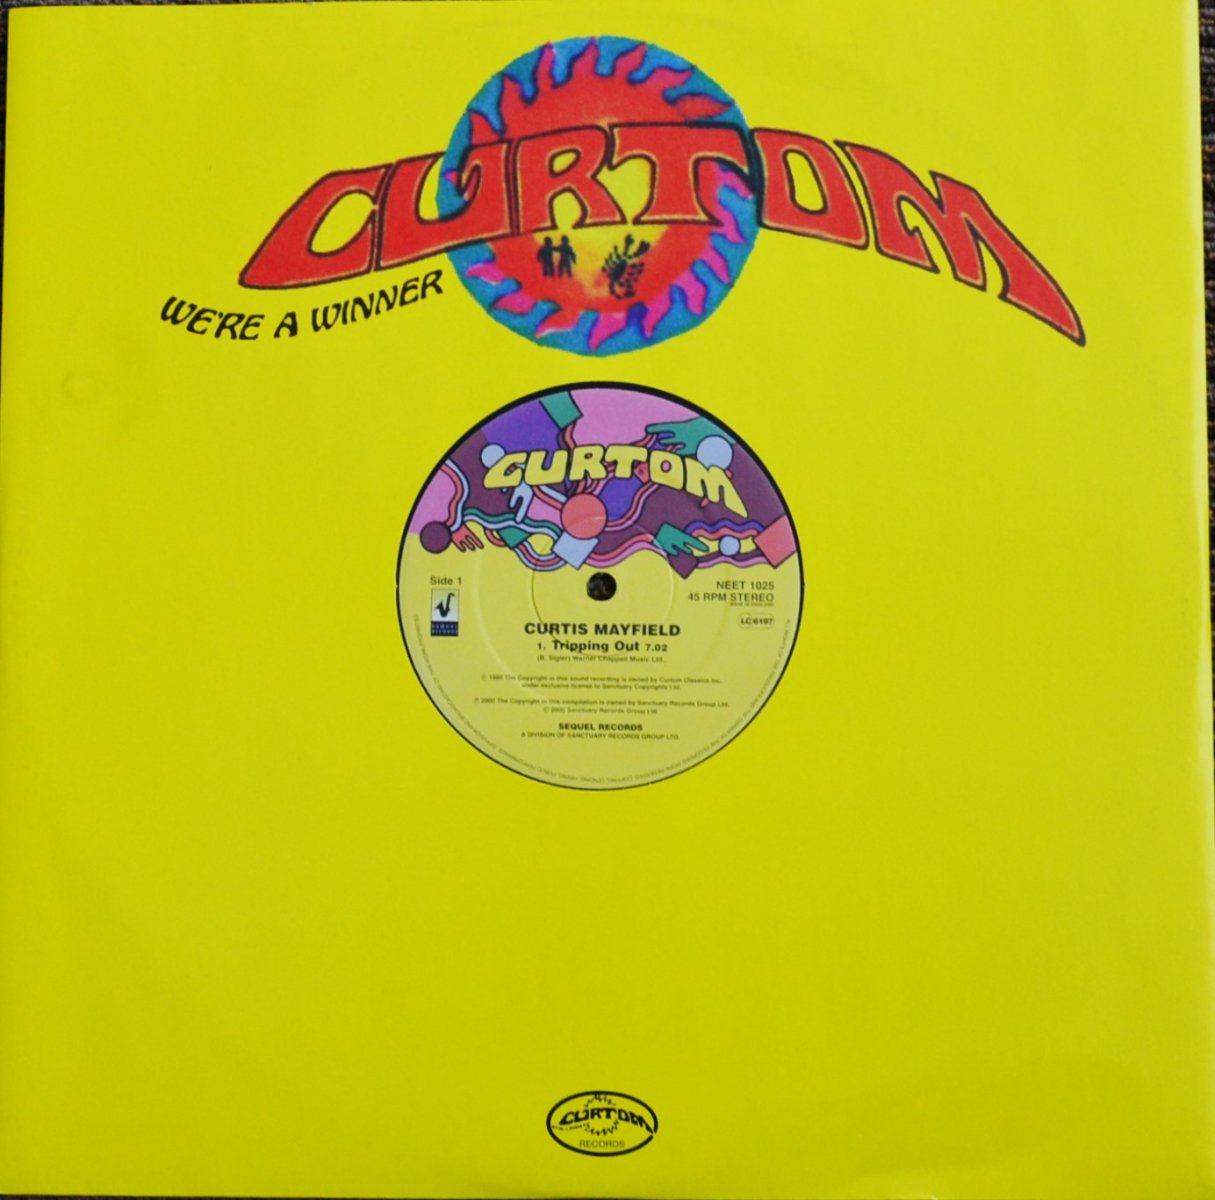 CURTIS MAYFIELD / TRIPPING OUT / GIVE ME YOUR LOVE / YOU'RE SO GOOD TO ME (12